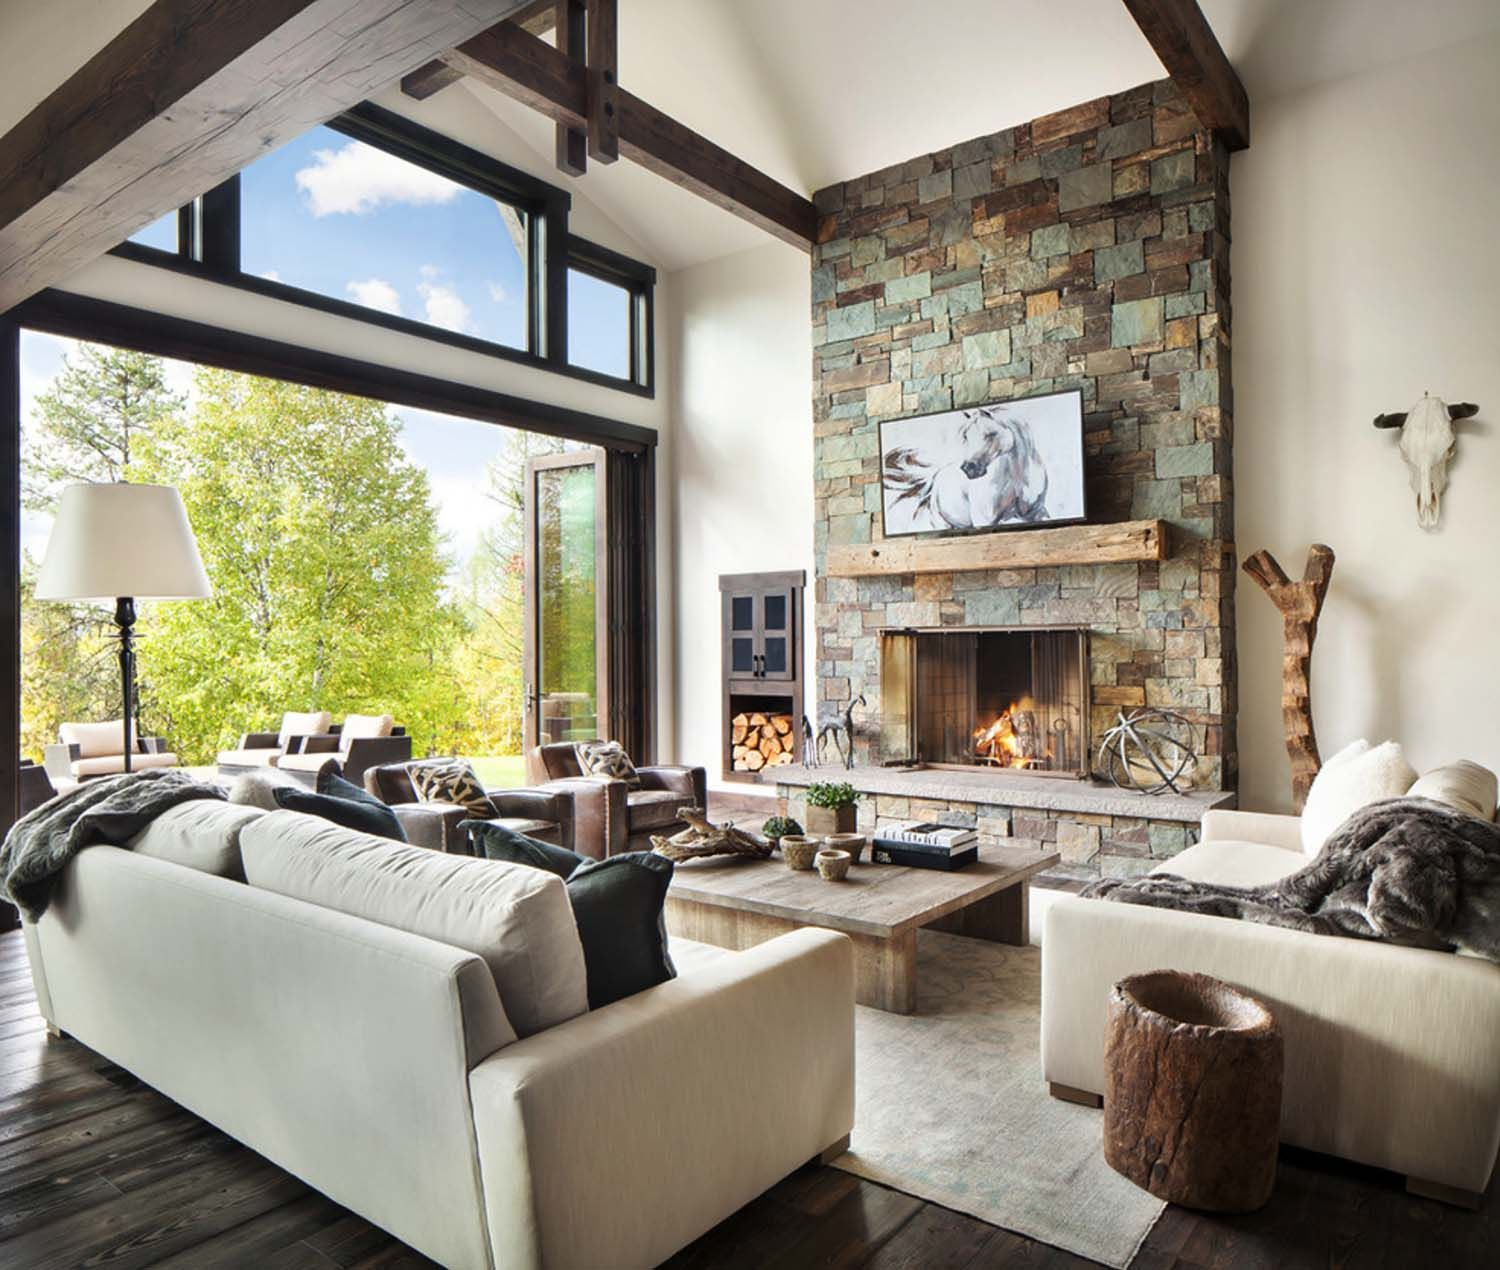 House Interior Decorating: Rustic-modern Dwelling Nestled In The Northern Rocky